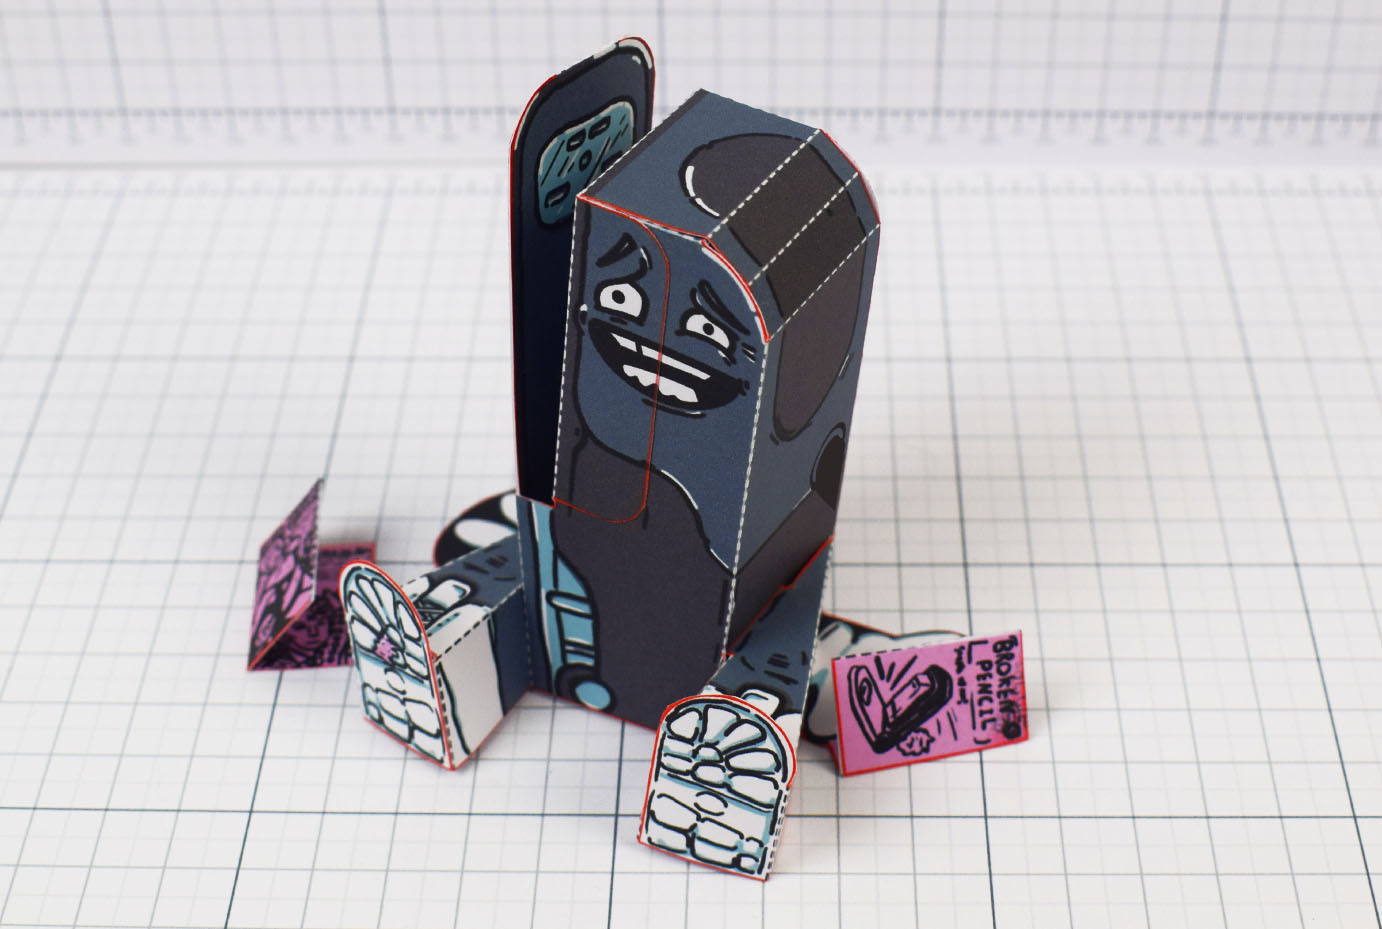 PTI - Broken Pencil - Staple Stanley Paper Toy - Image Main